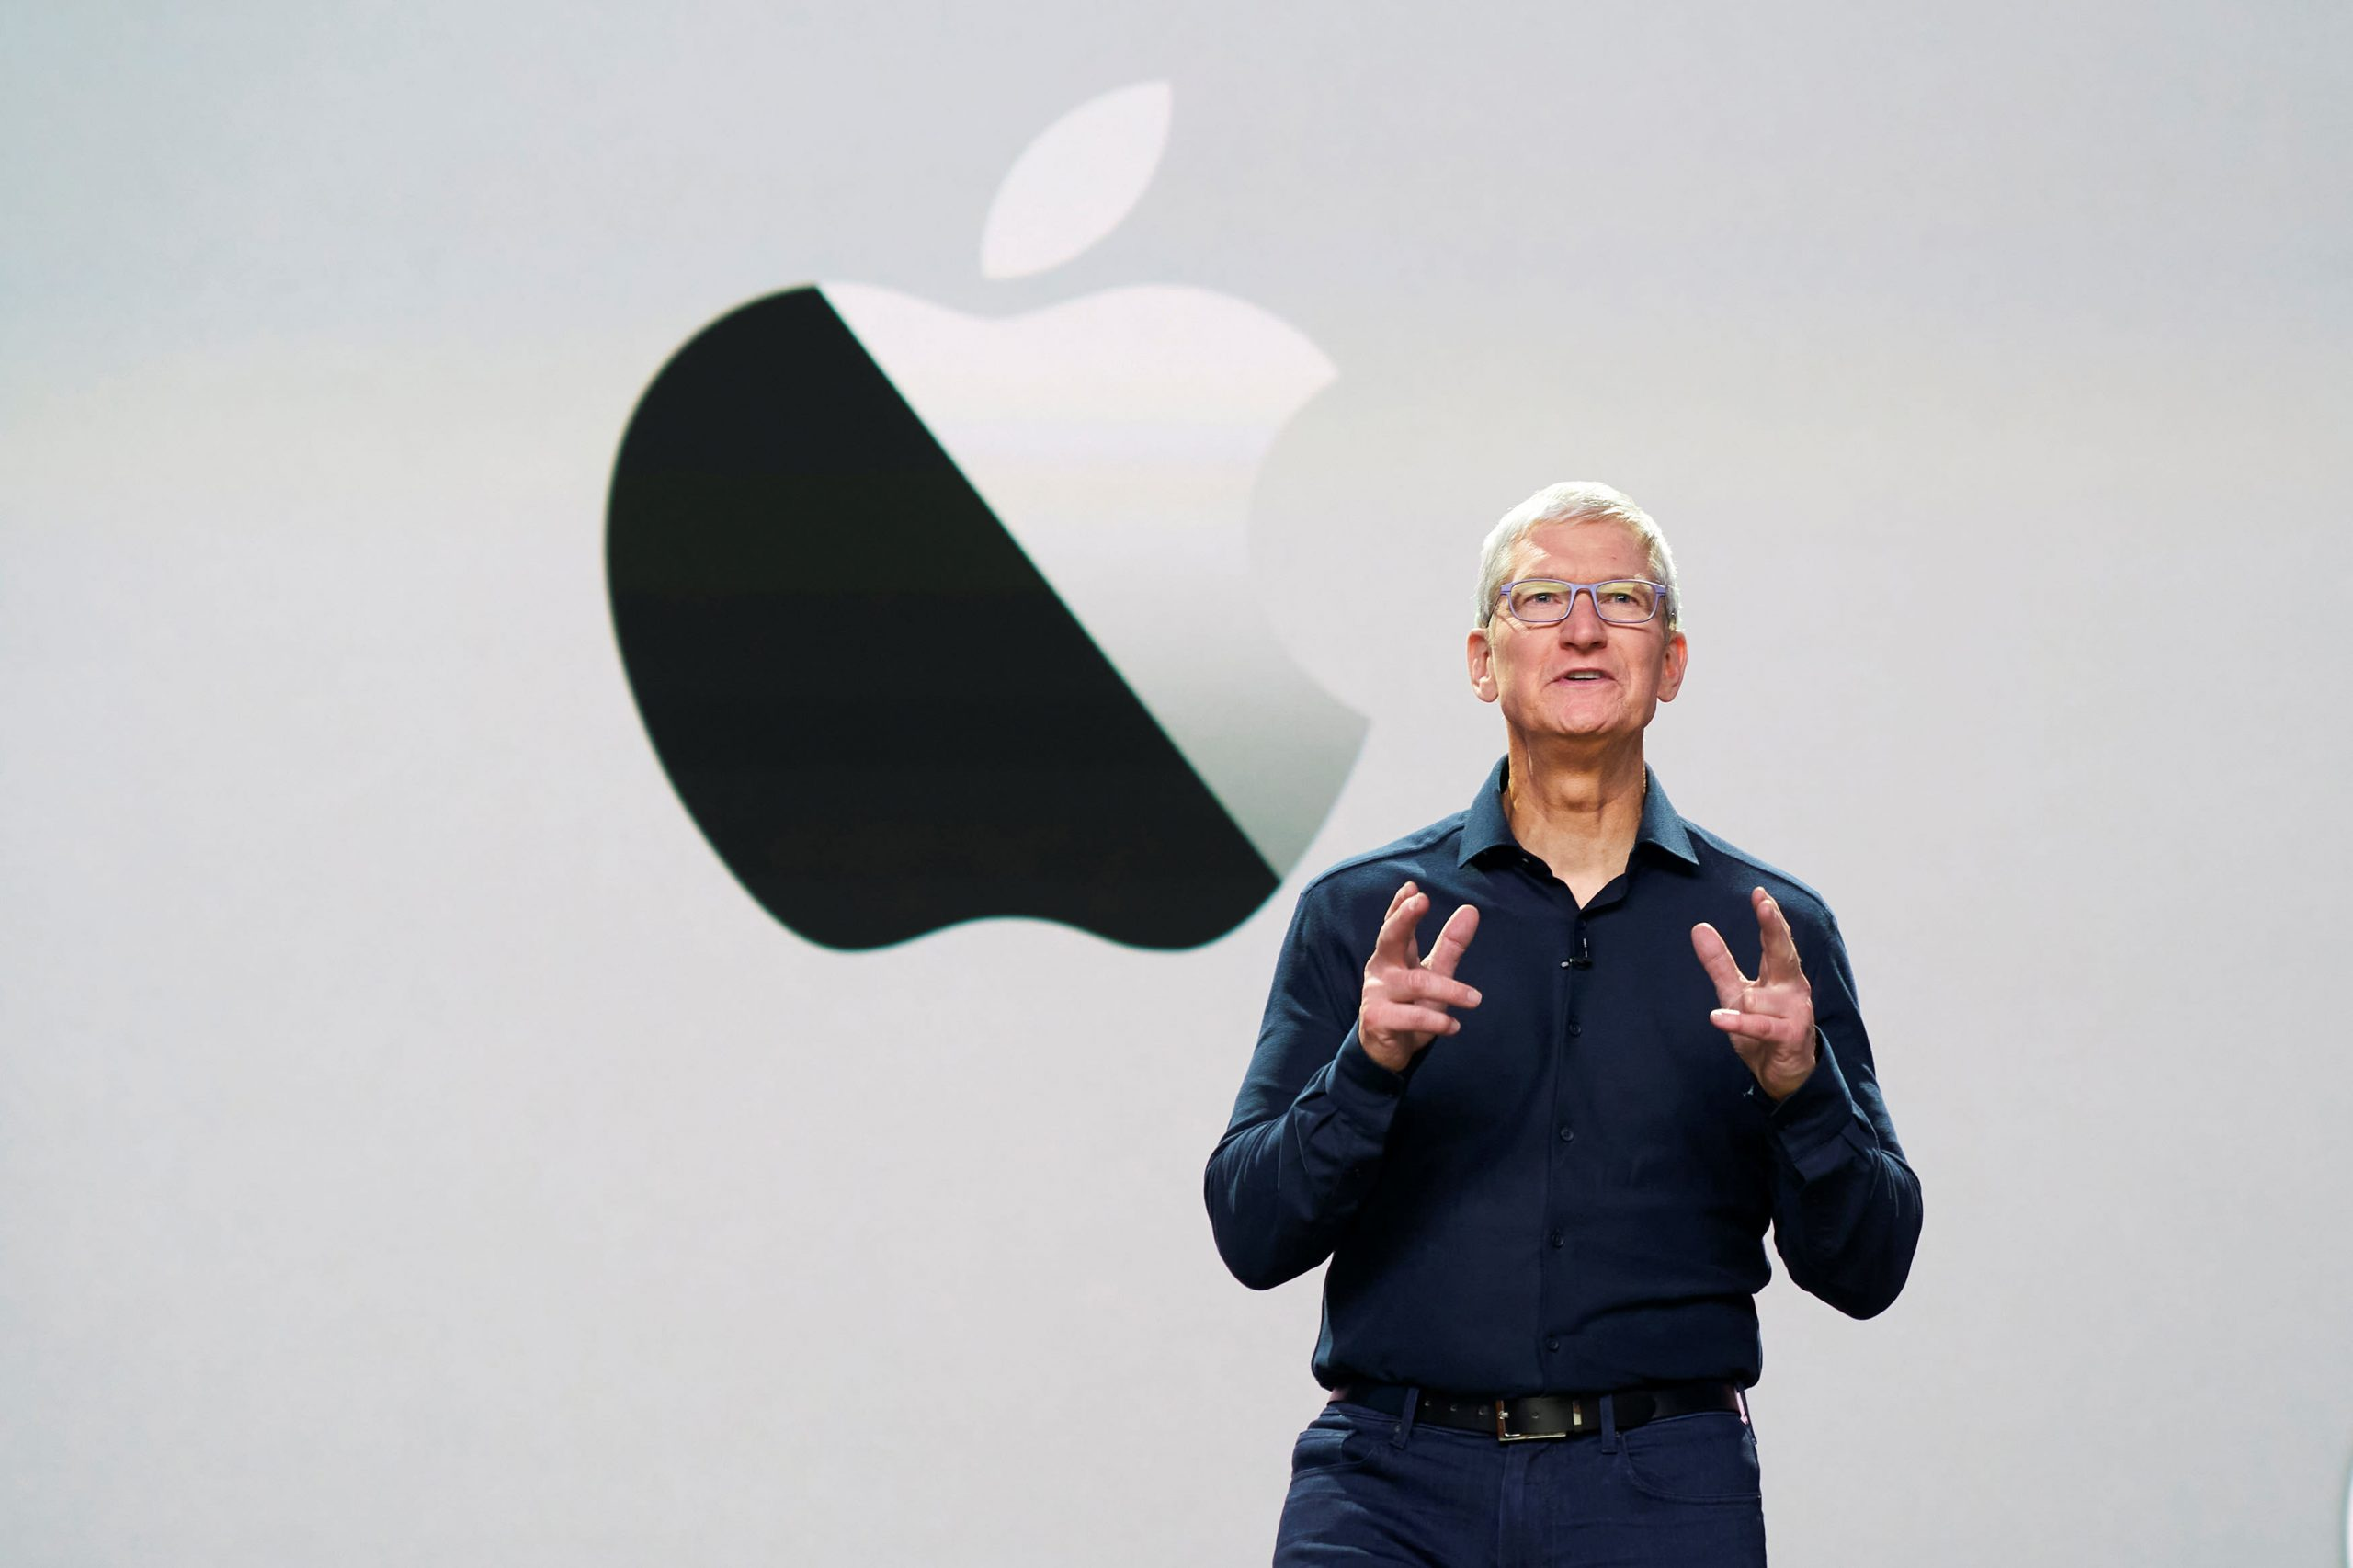 apple-delays-iphone-change-that's-expected-to-make-it-harder-for-facebook-and-other-apps-to-target-ads